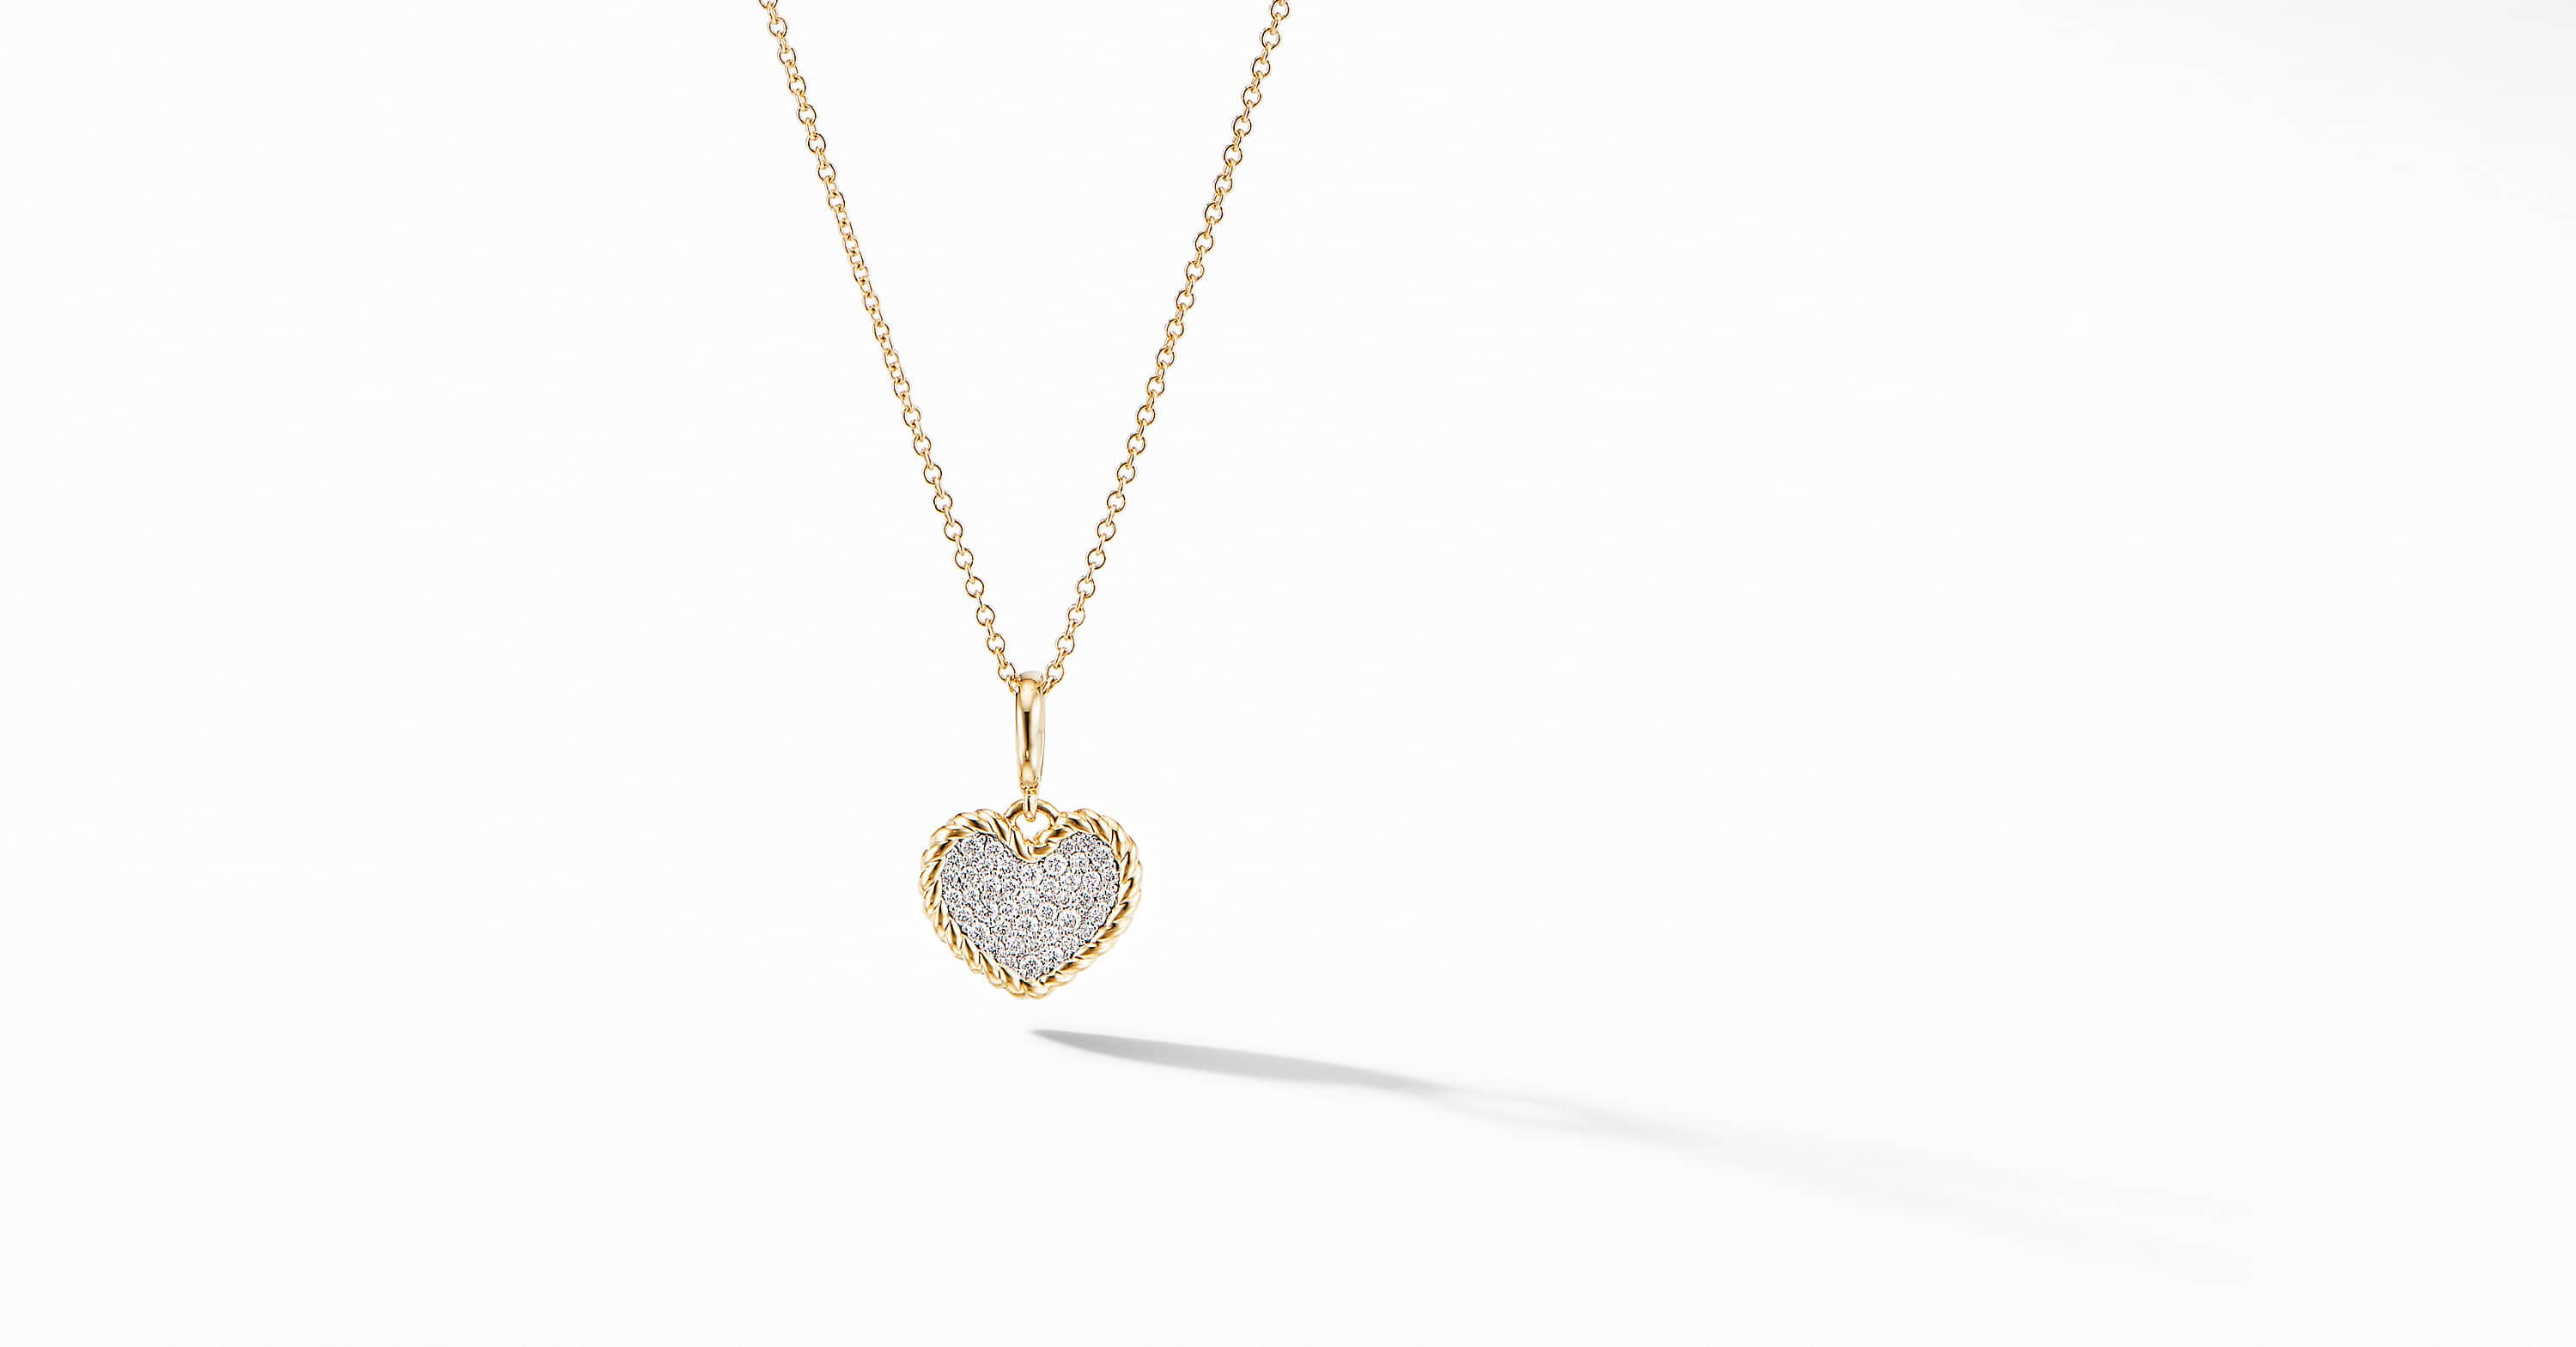 Cable Collectibles Pavé Plate Heart Charm Necklace in 18K Yellow Gold